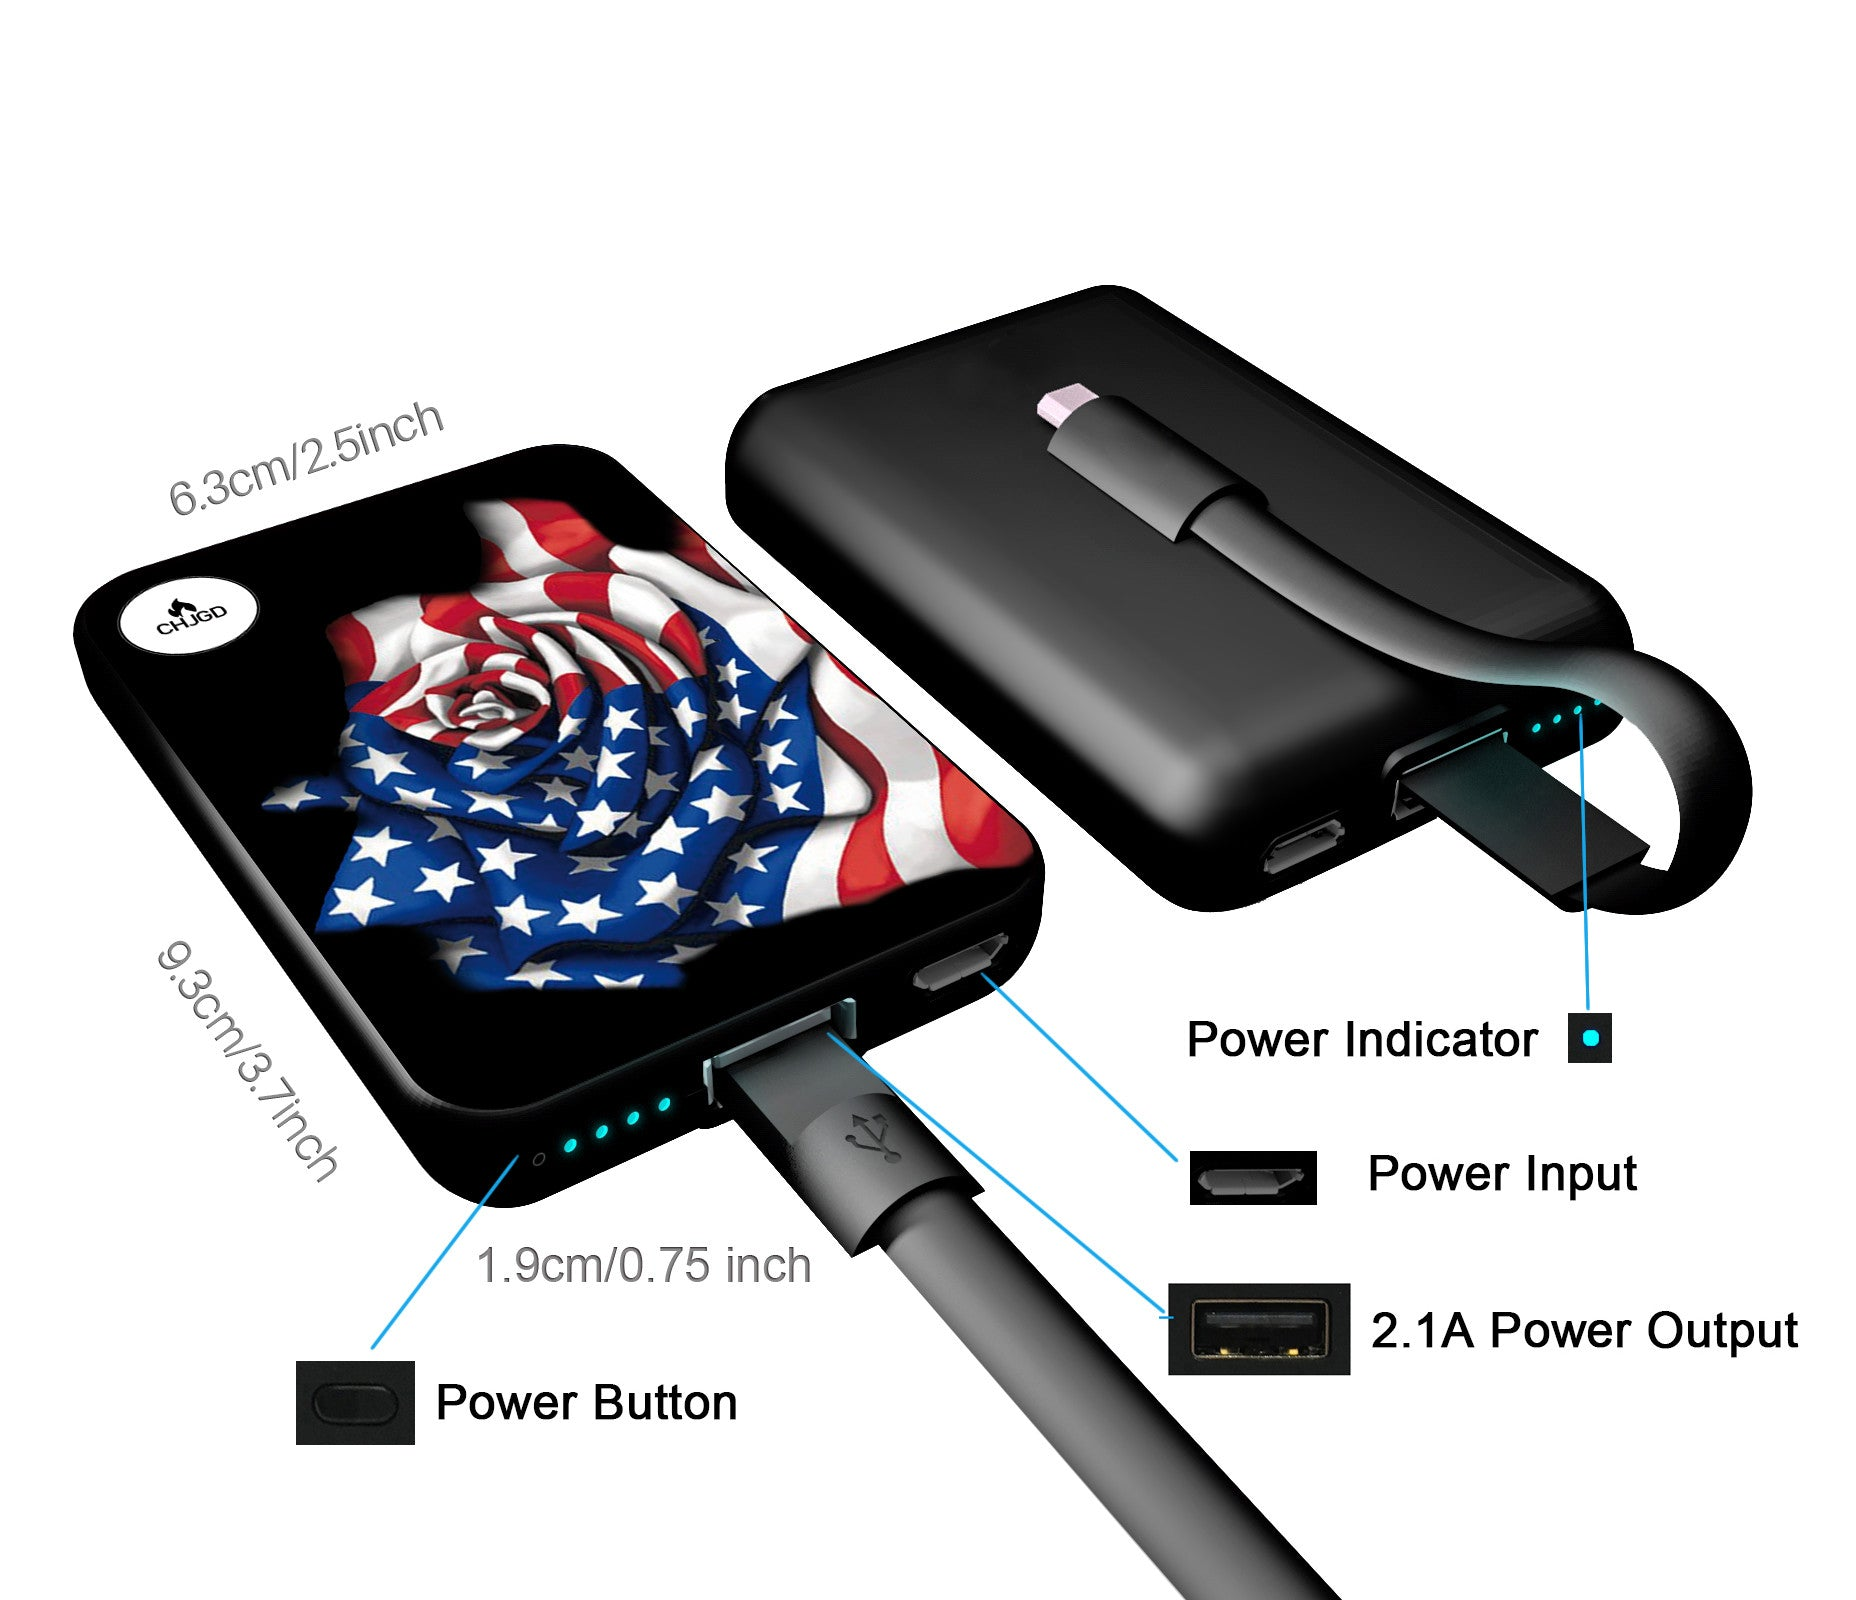 World's Smallest 10,000 mAh Power Bank - CHJGD Ultracompact (American Rose)